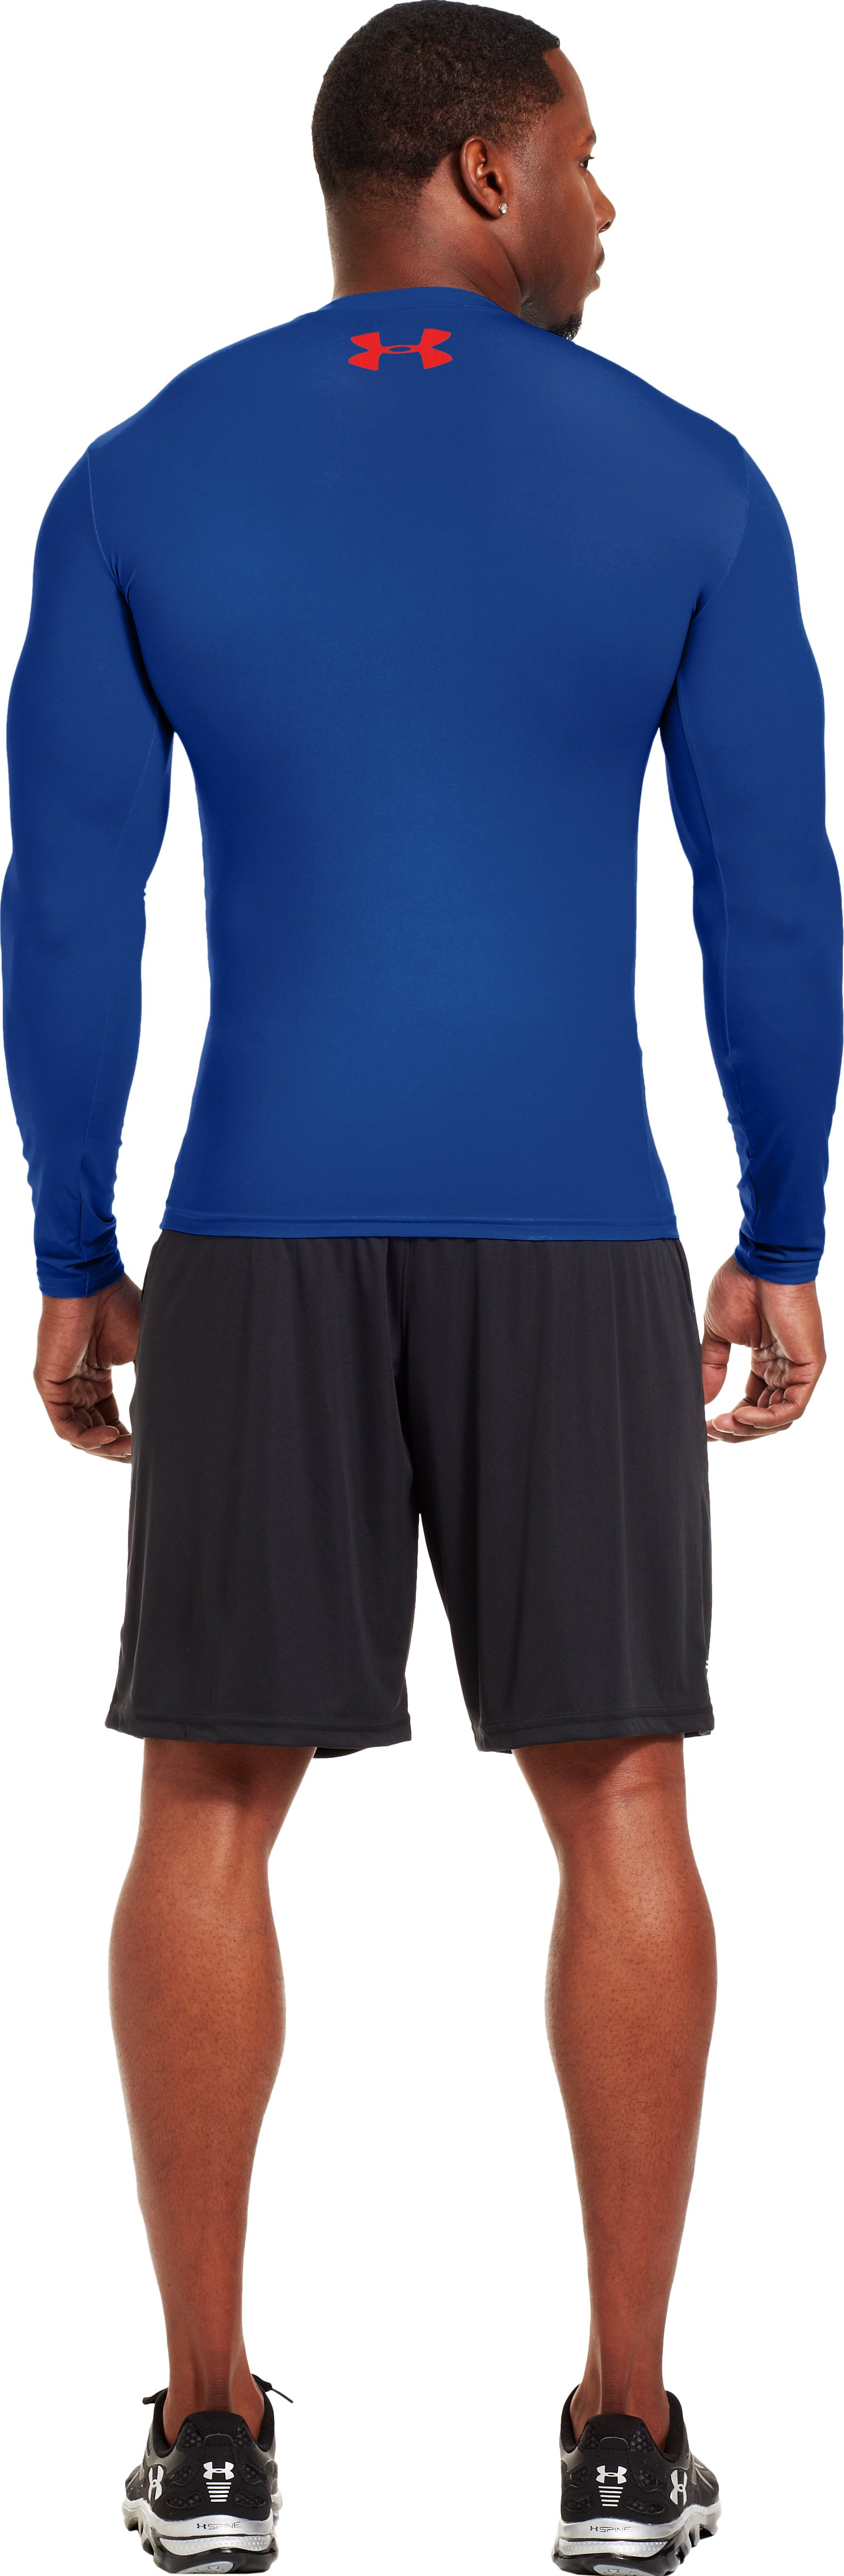 Men's Under Armour® Alter Ego Compression Long Sleeve Shirt, Royal, Back